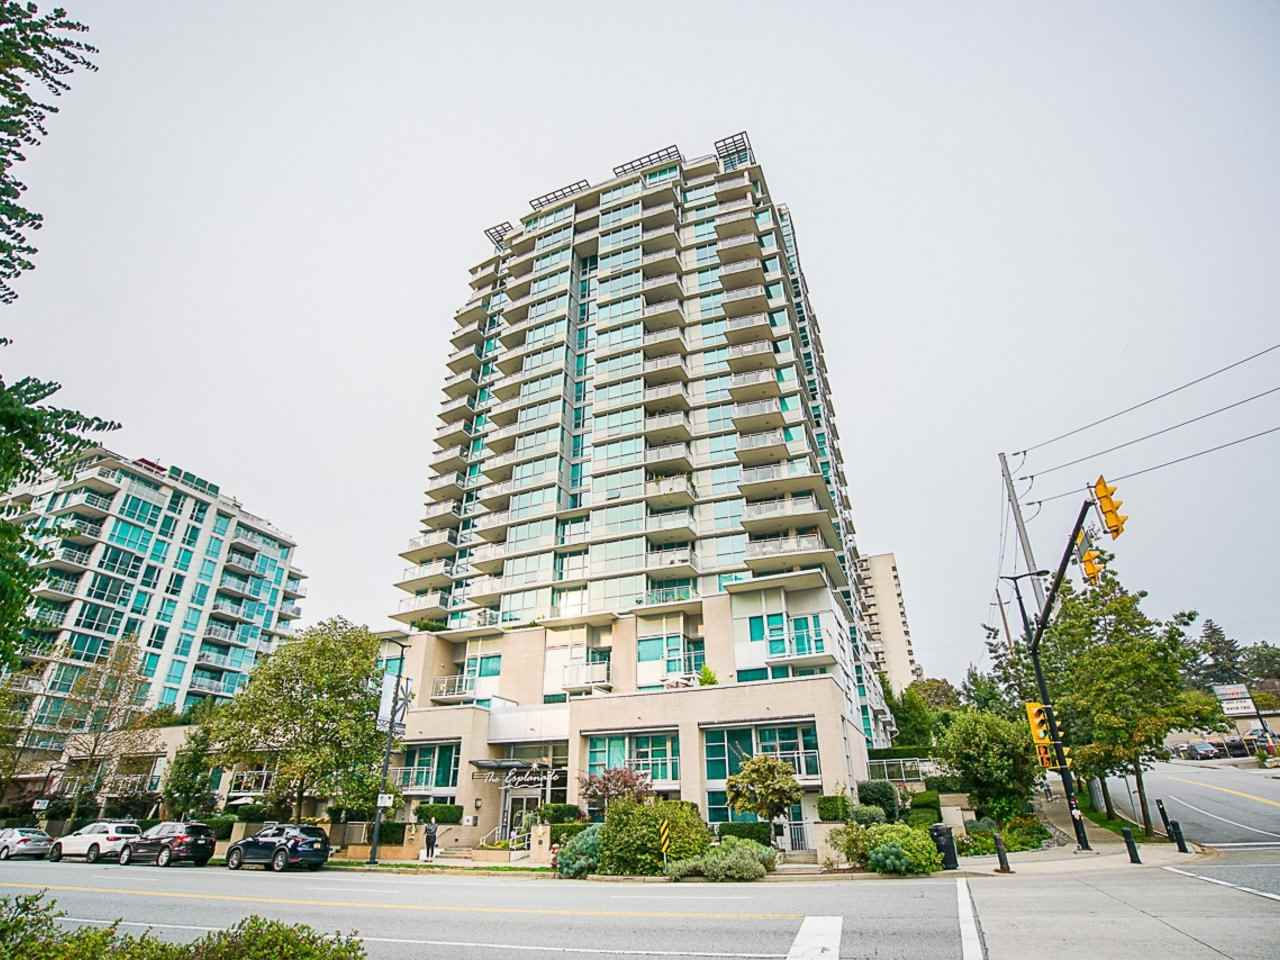 604 188 E ESPLANADE - Lower Lonsdale Apartment/Condo for sale, 2 Bedrooms (R2528391) - #2